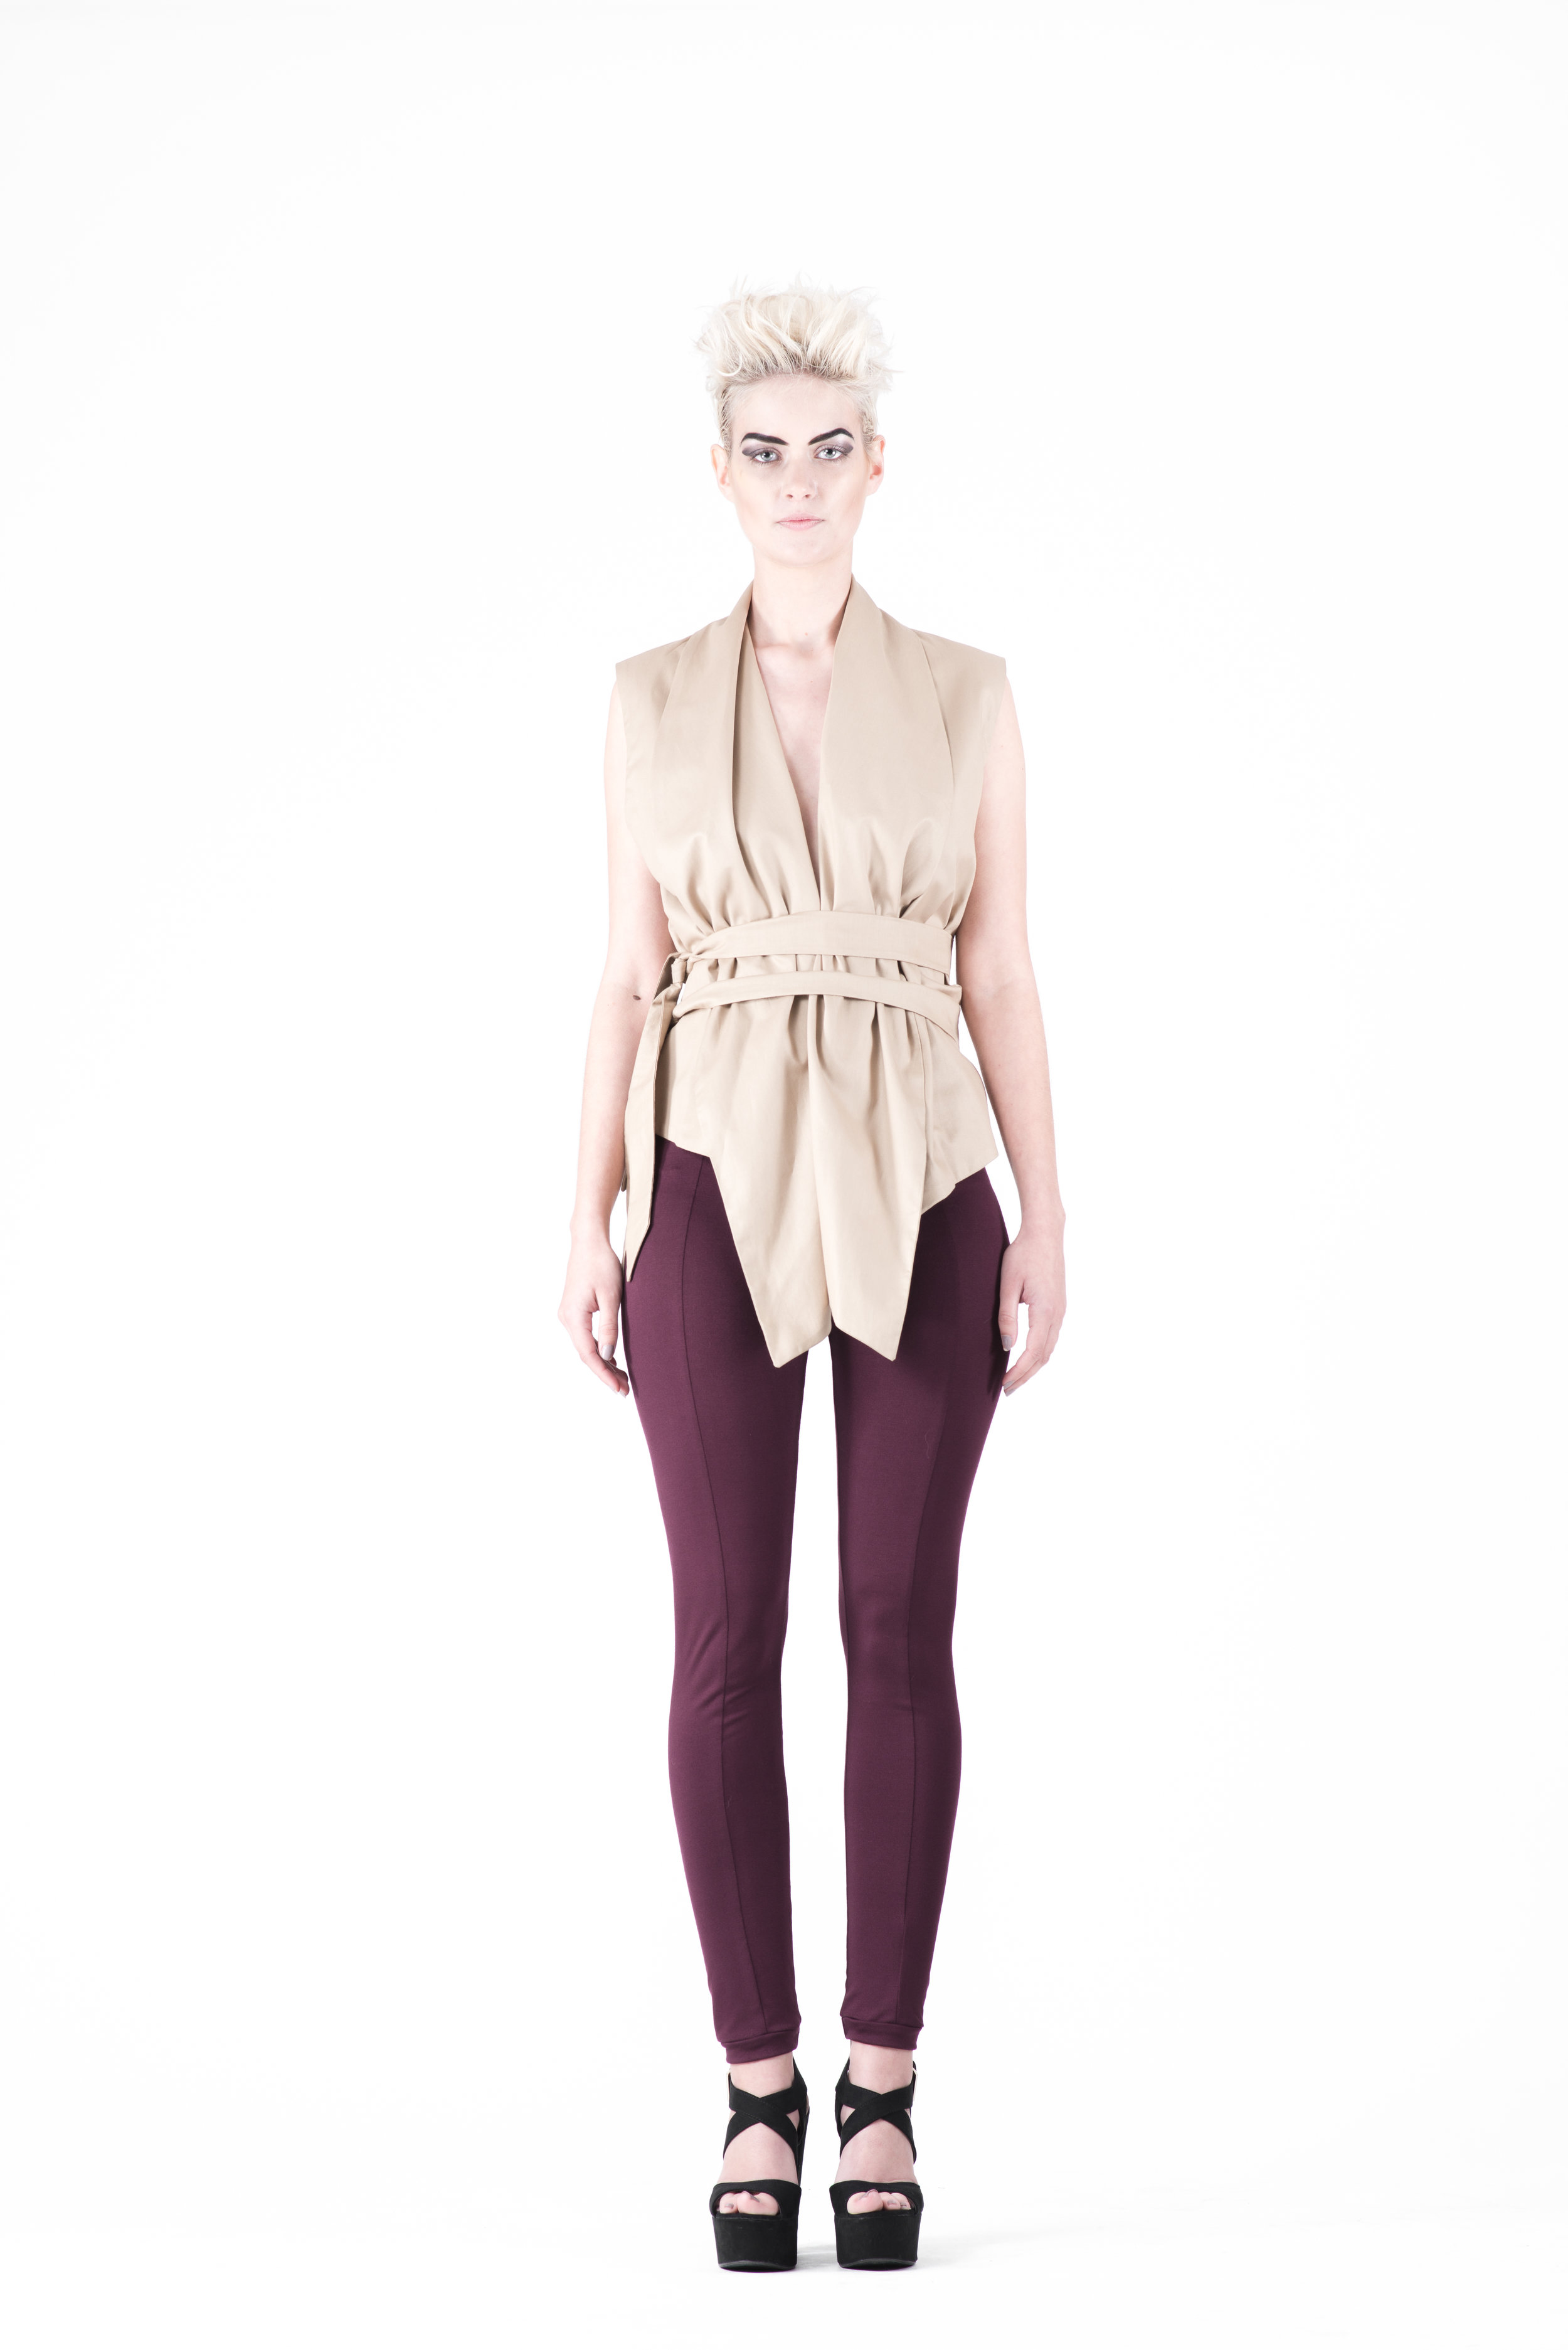 zaramia-ava-zaramiaava-leeds-fashion-designer-ethical-sustainable-tailored-minimalist-mioka-beige-top-versatile-rei-plum-legginges-drape-cowl-styling-womenswear-models-photoshoot-63